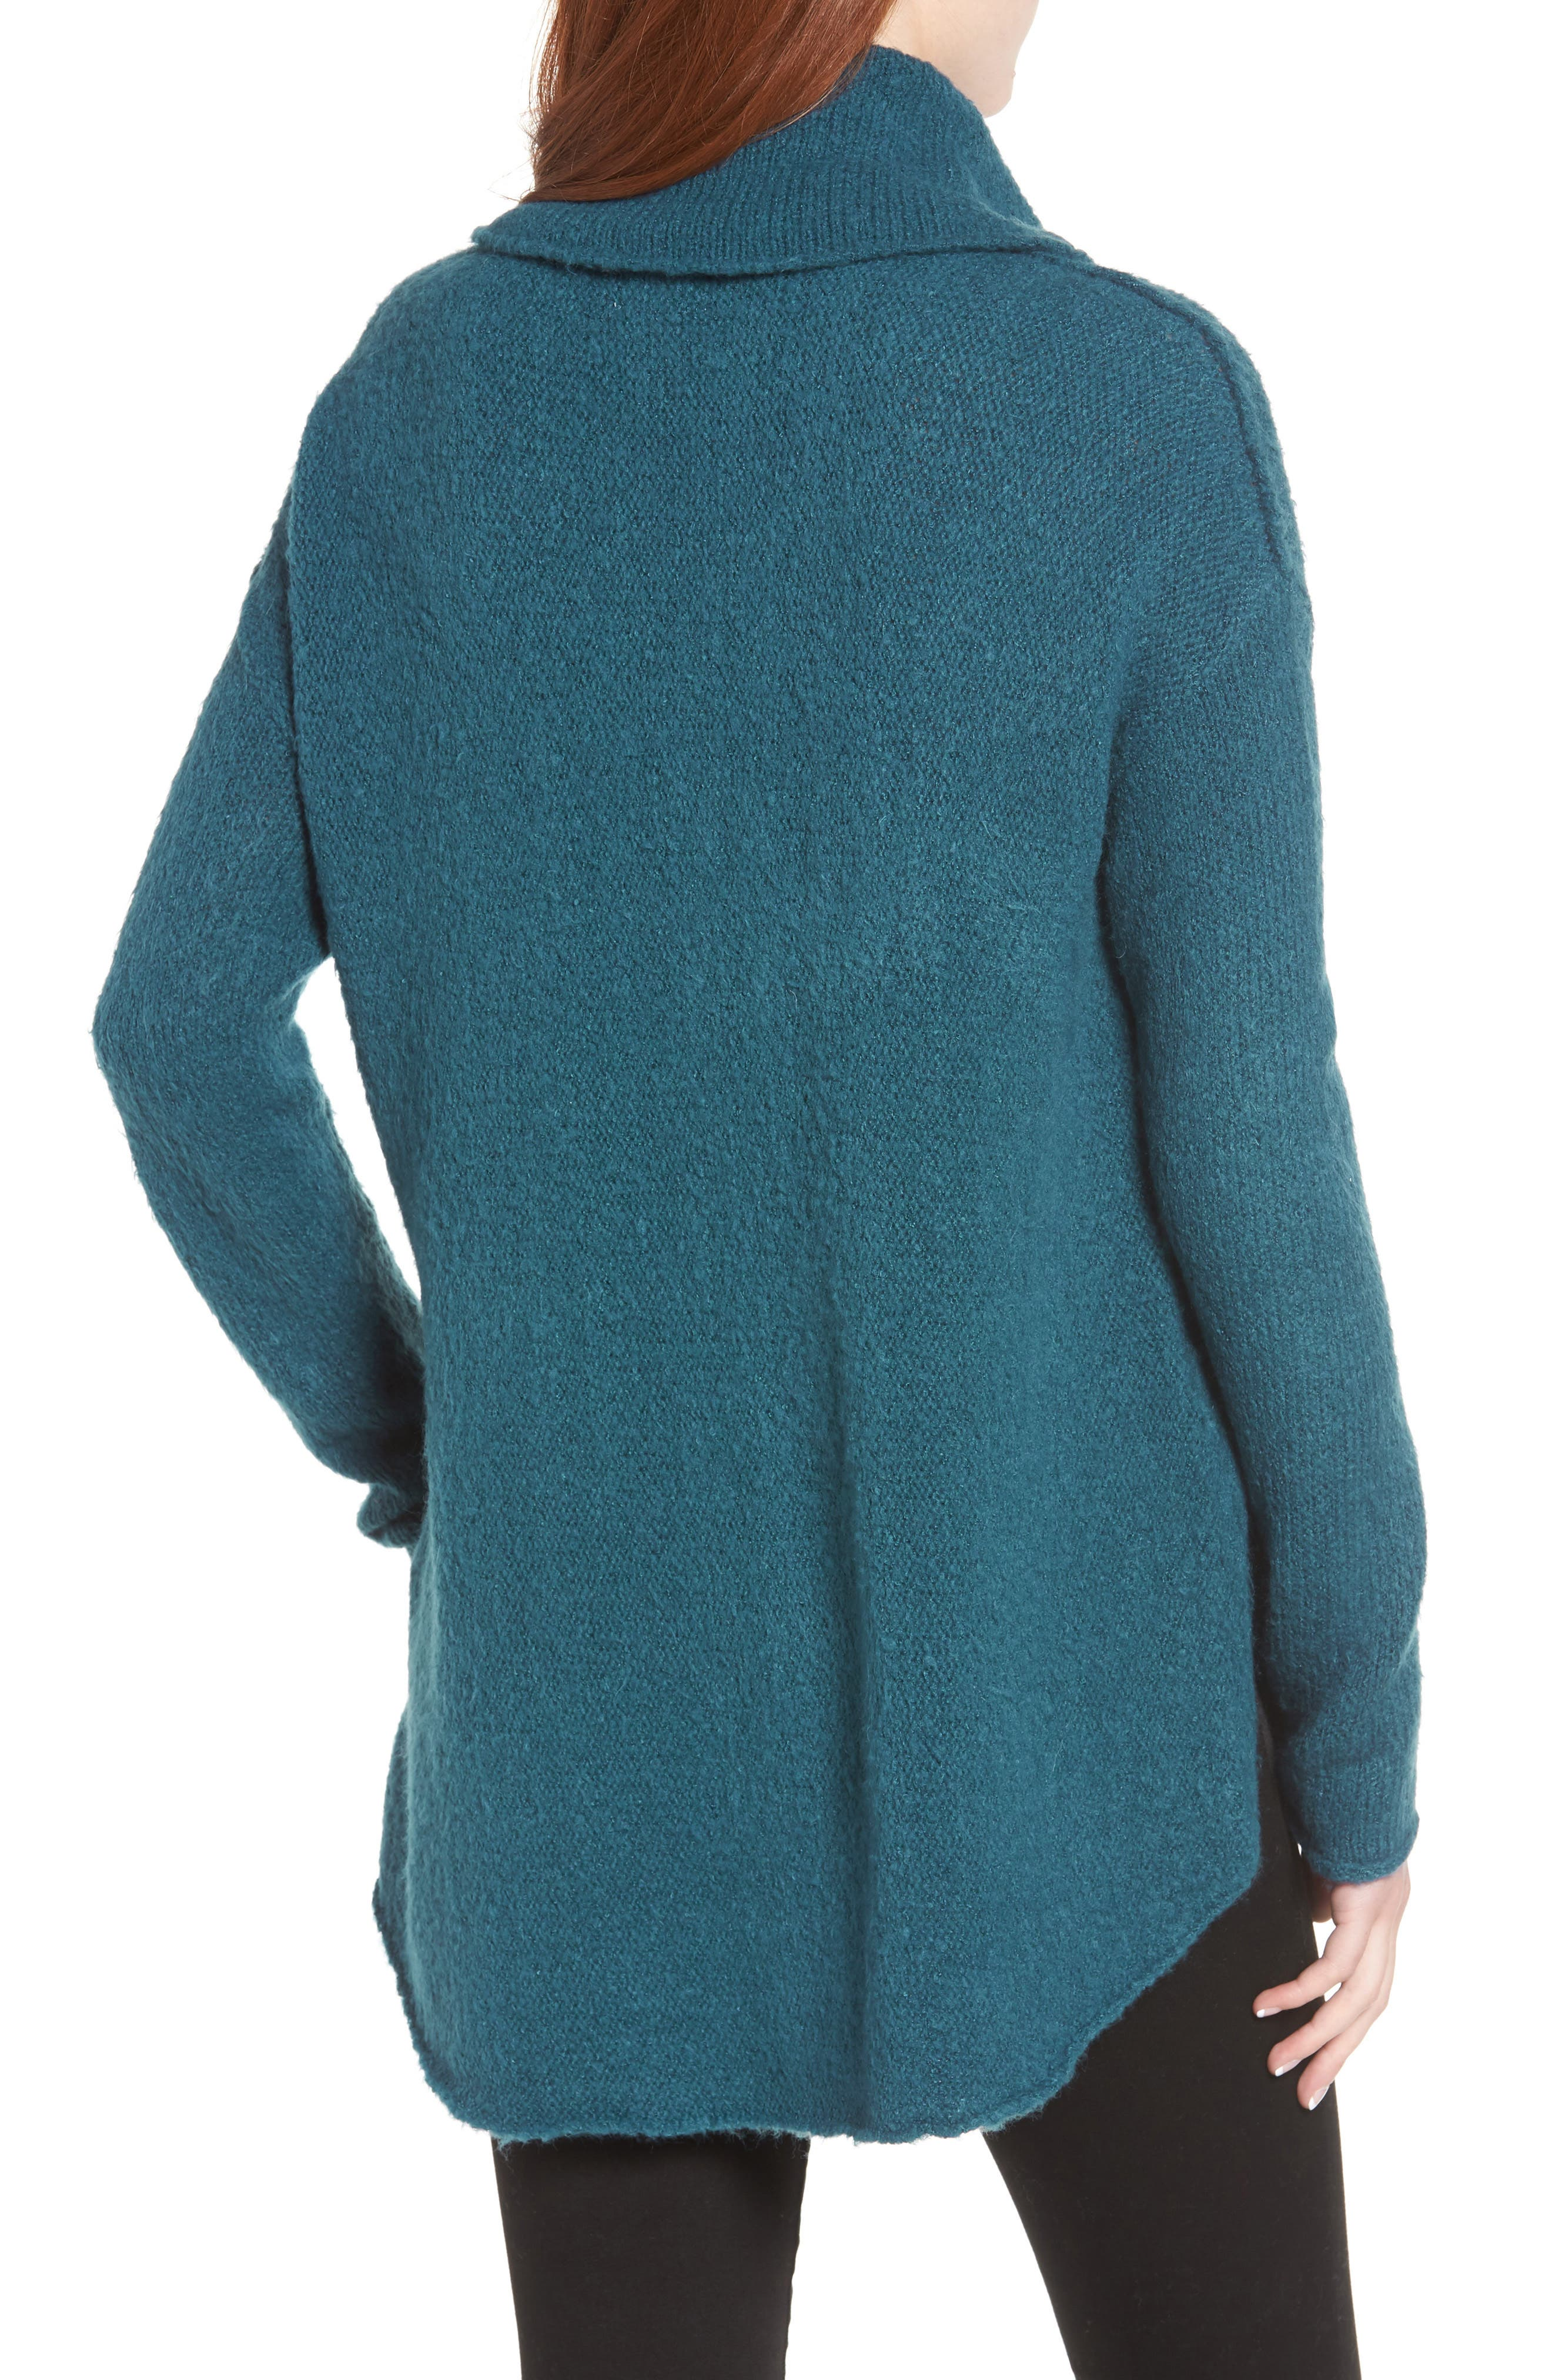 Tunic Sweater,                             Alternate thumbnail 2, color,                             TEAL CORAL